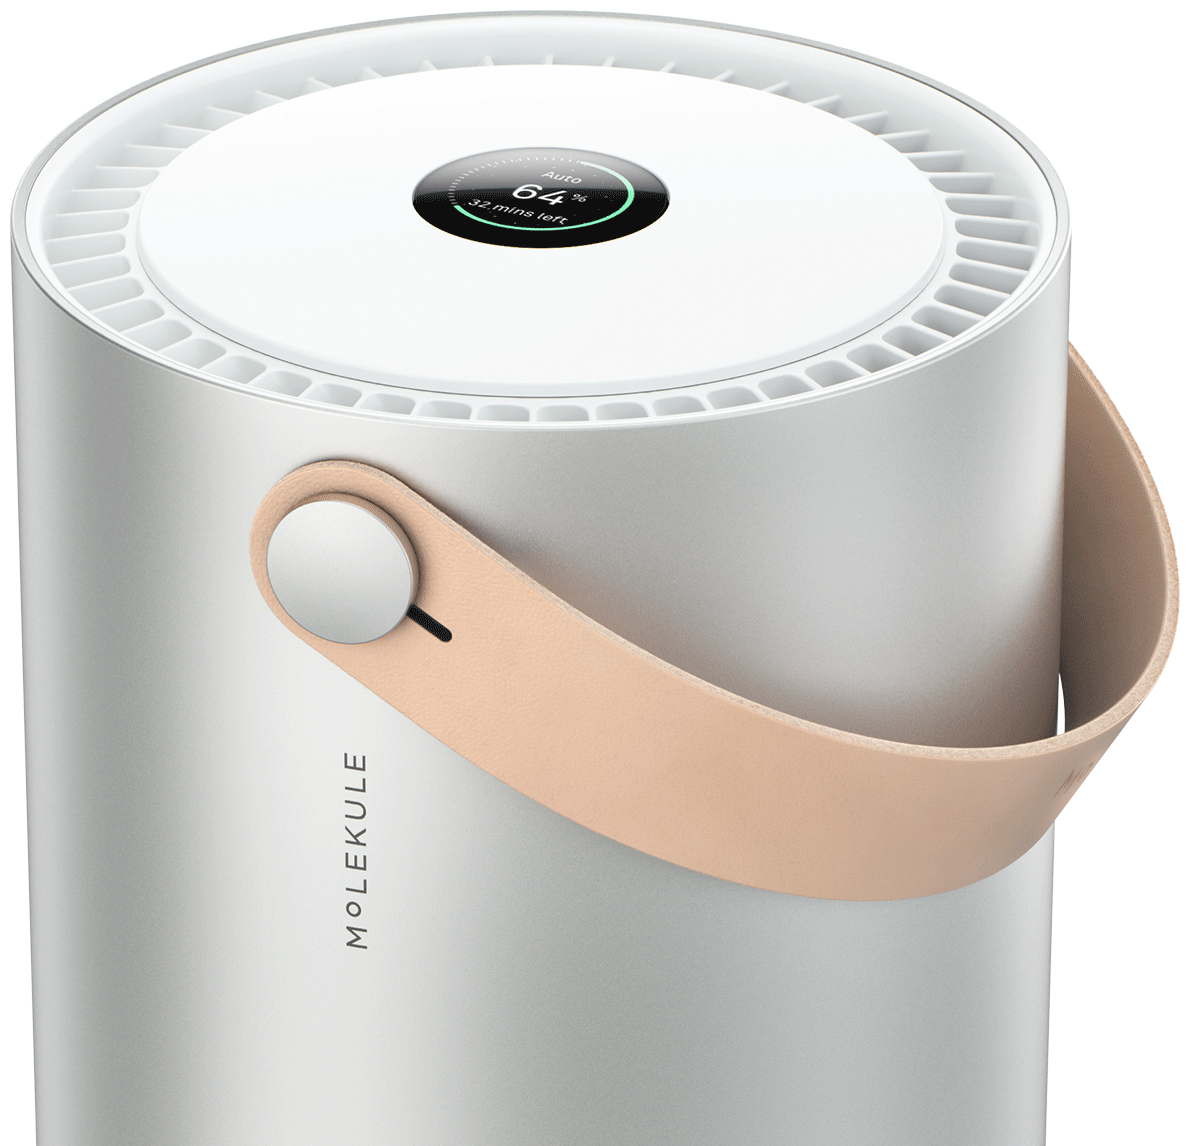 Molekule the molecular air purifier design milk Create a blueprint